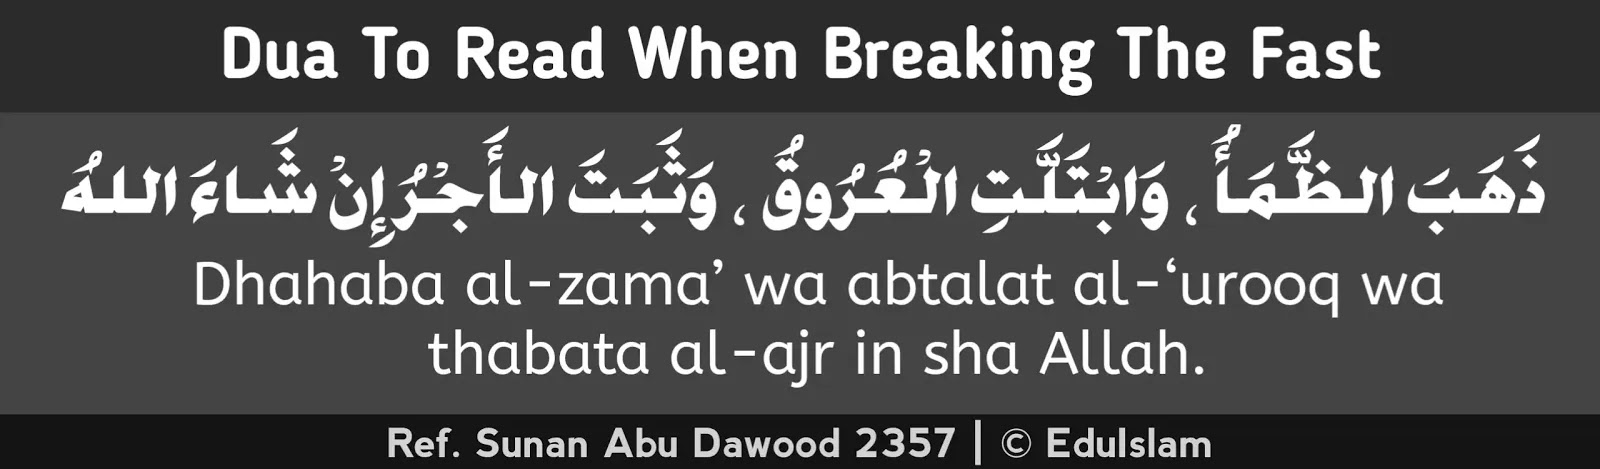 Authentic dua for breaking fast